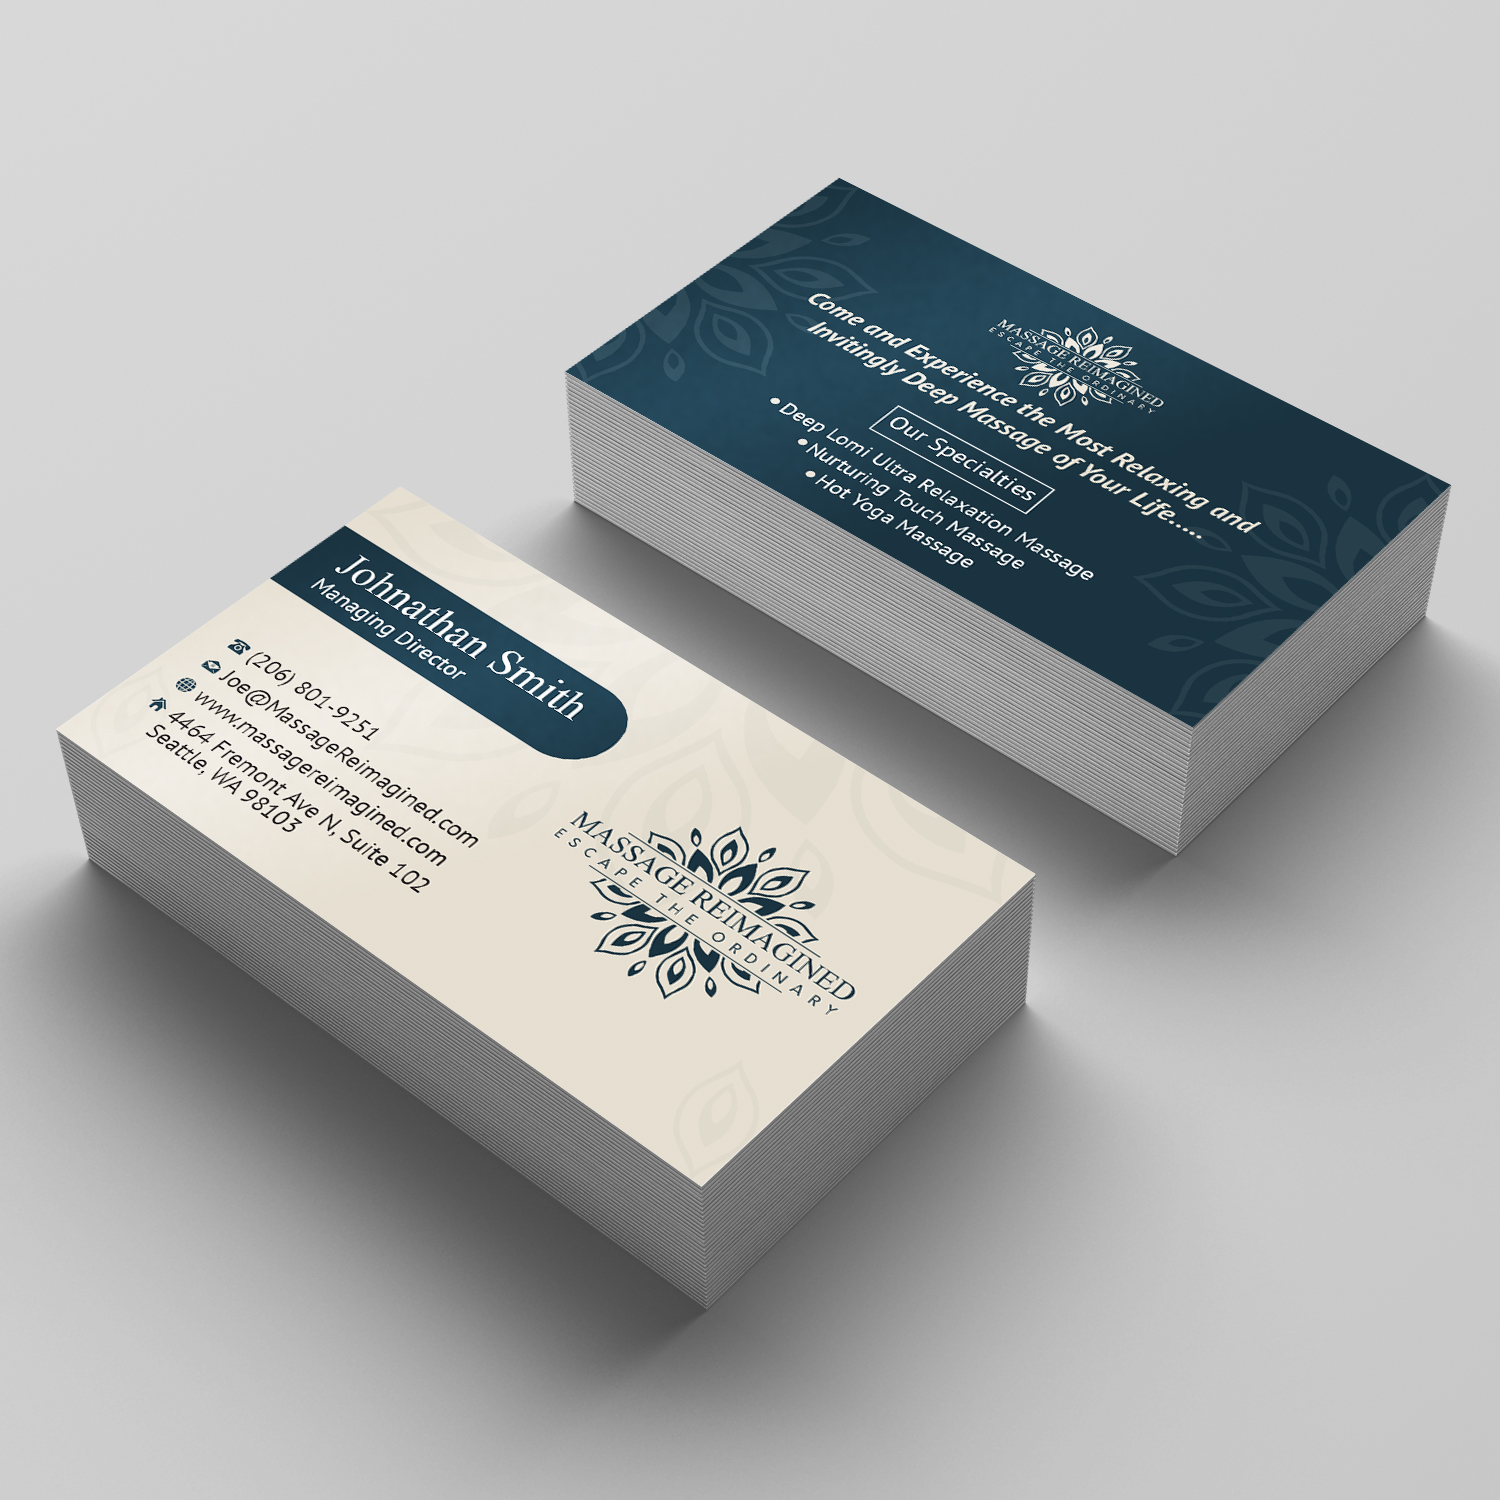 Elegant playful massage business card design for a company by business card design by sudipta sen for this project design 16315049 colourmoves